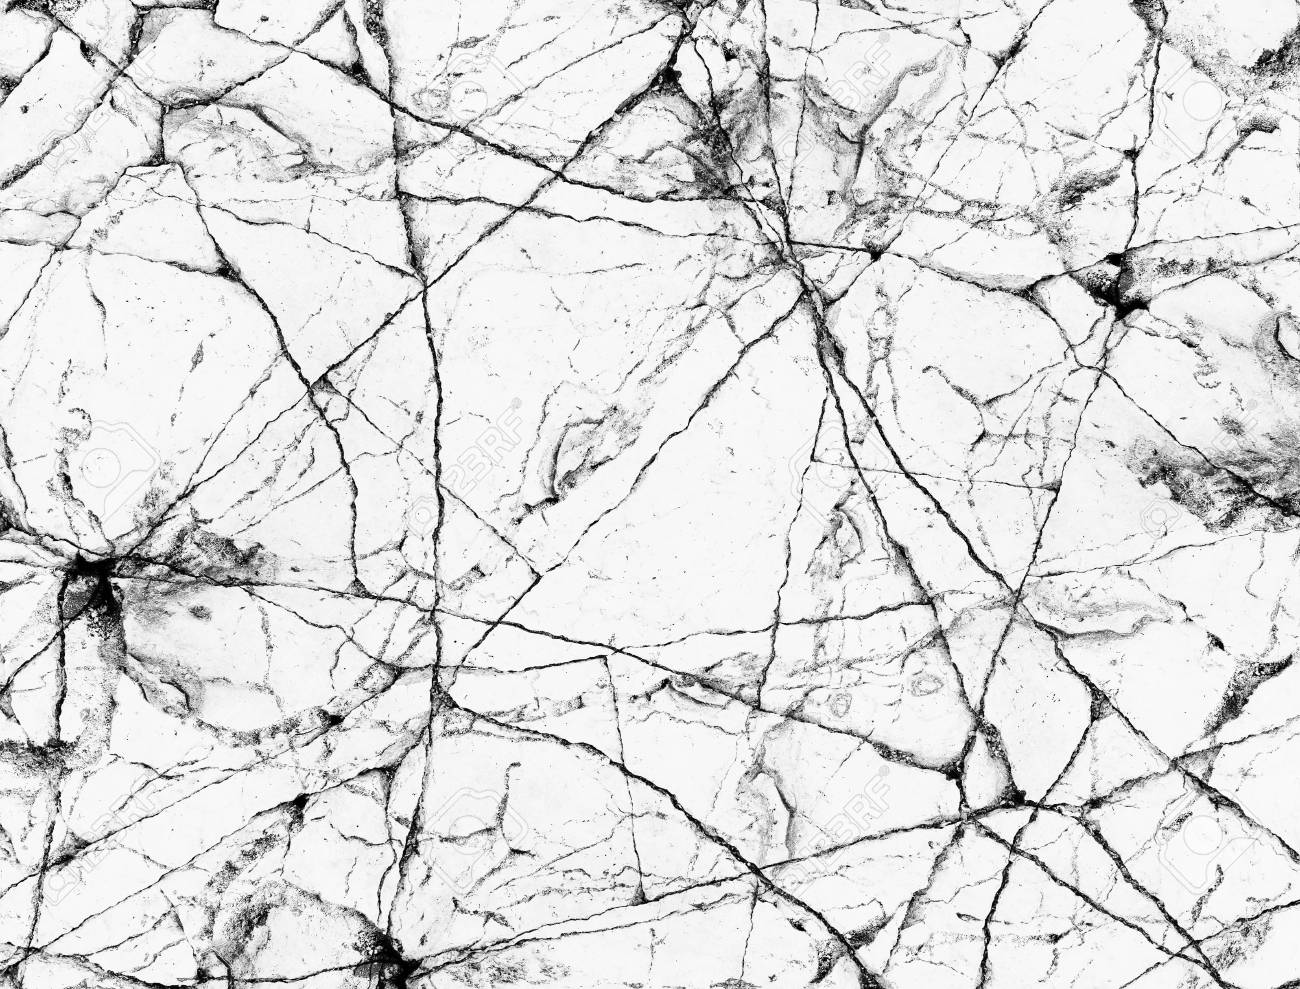 Abstract Natural Black And White Or Gray Cracked Marble For Background Stock Photo Picture And Royalty Free Image Image 102280376